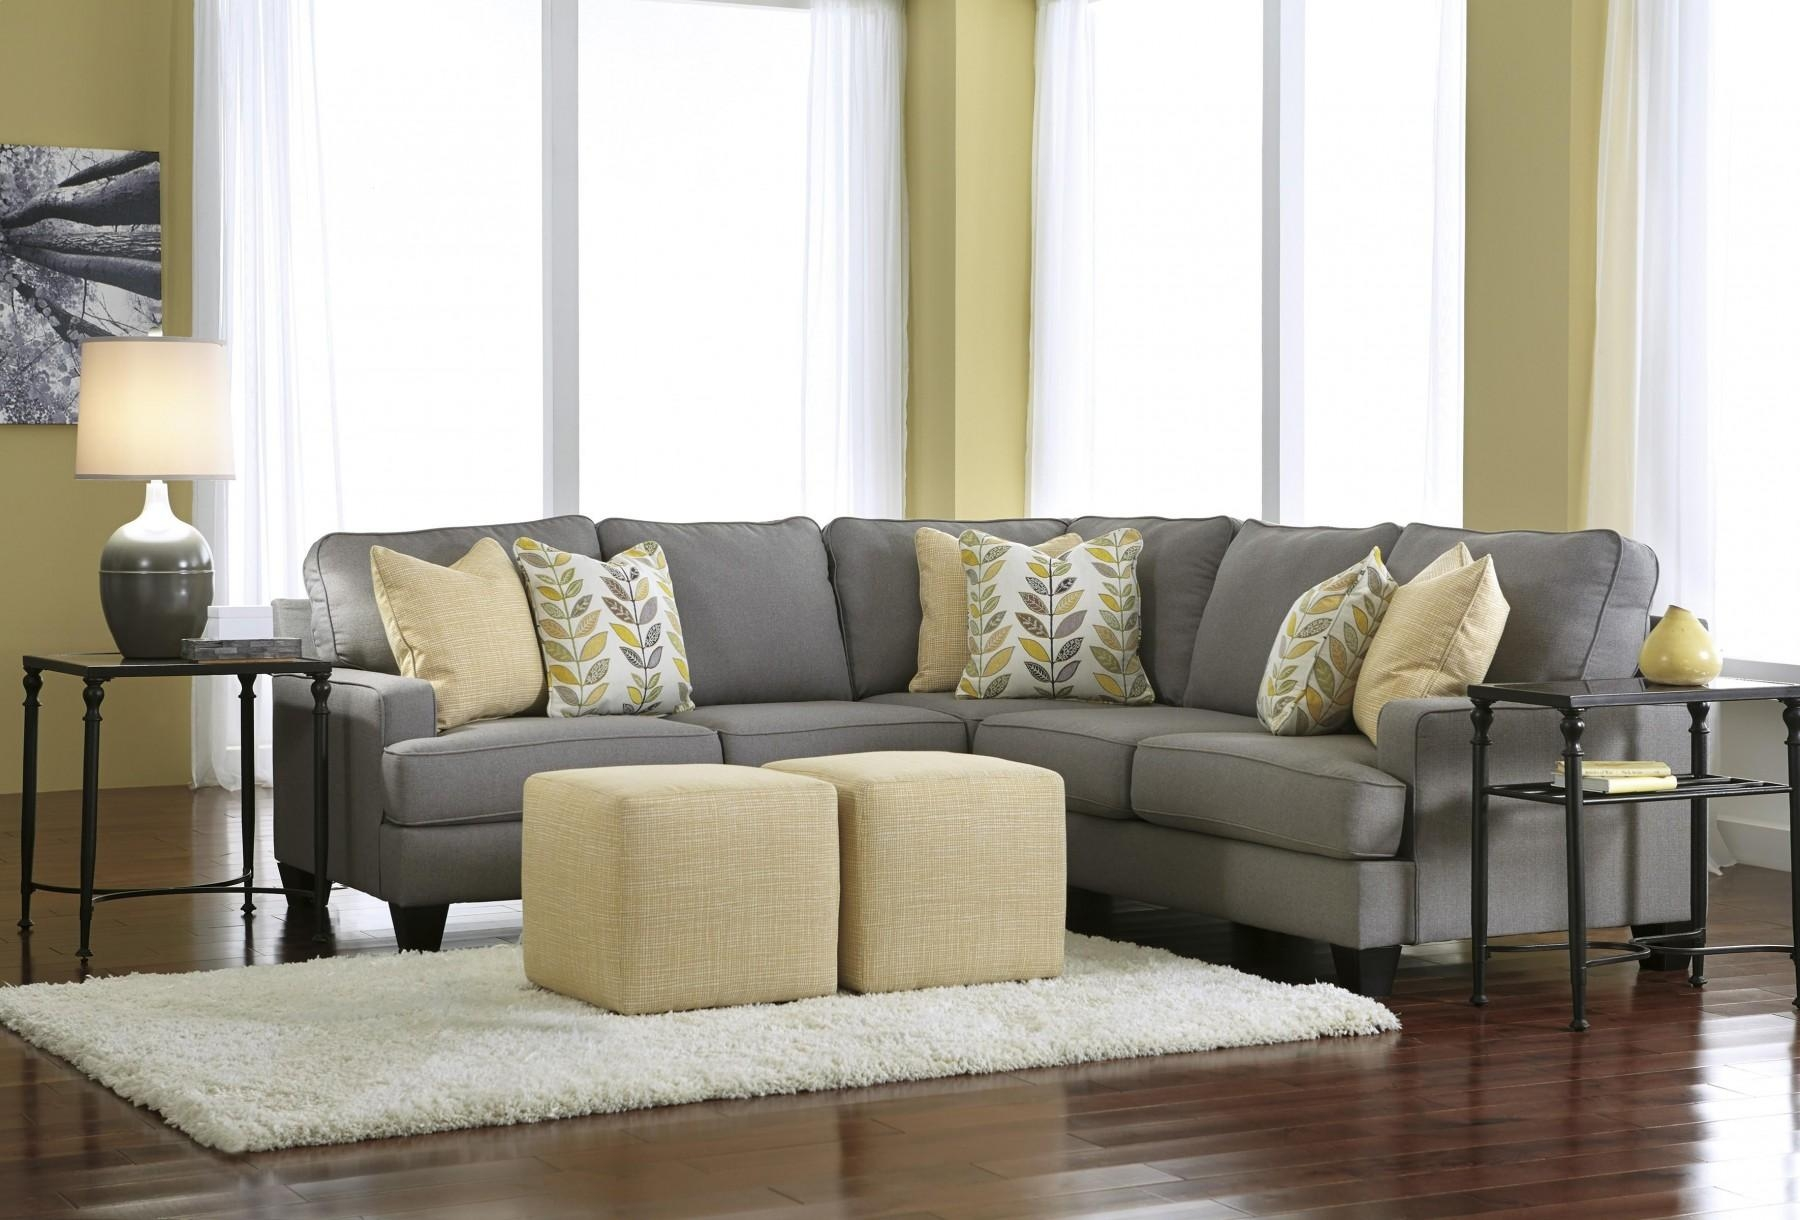 Sofas Center : Cu Left Cuddler Sectional Sofa Bassett Home Throughout Bassett Cuddler Sectional (Image 10 of 15)